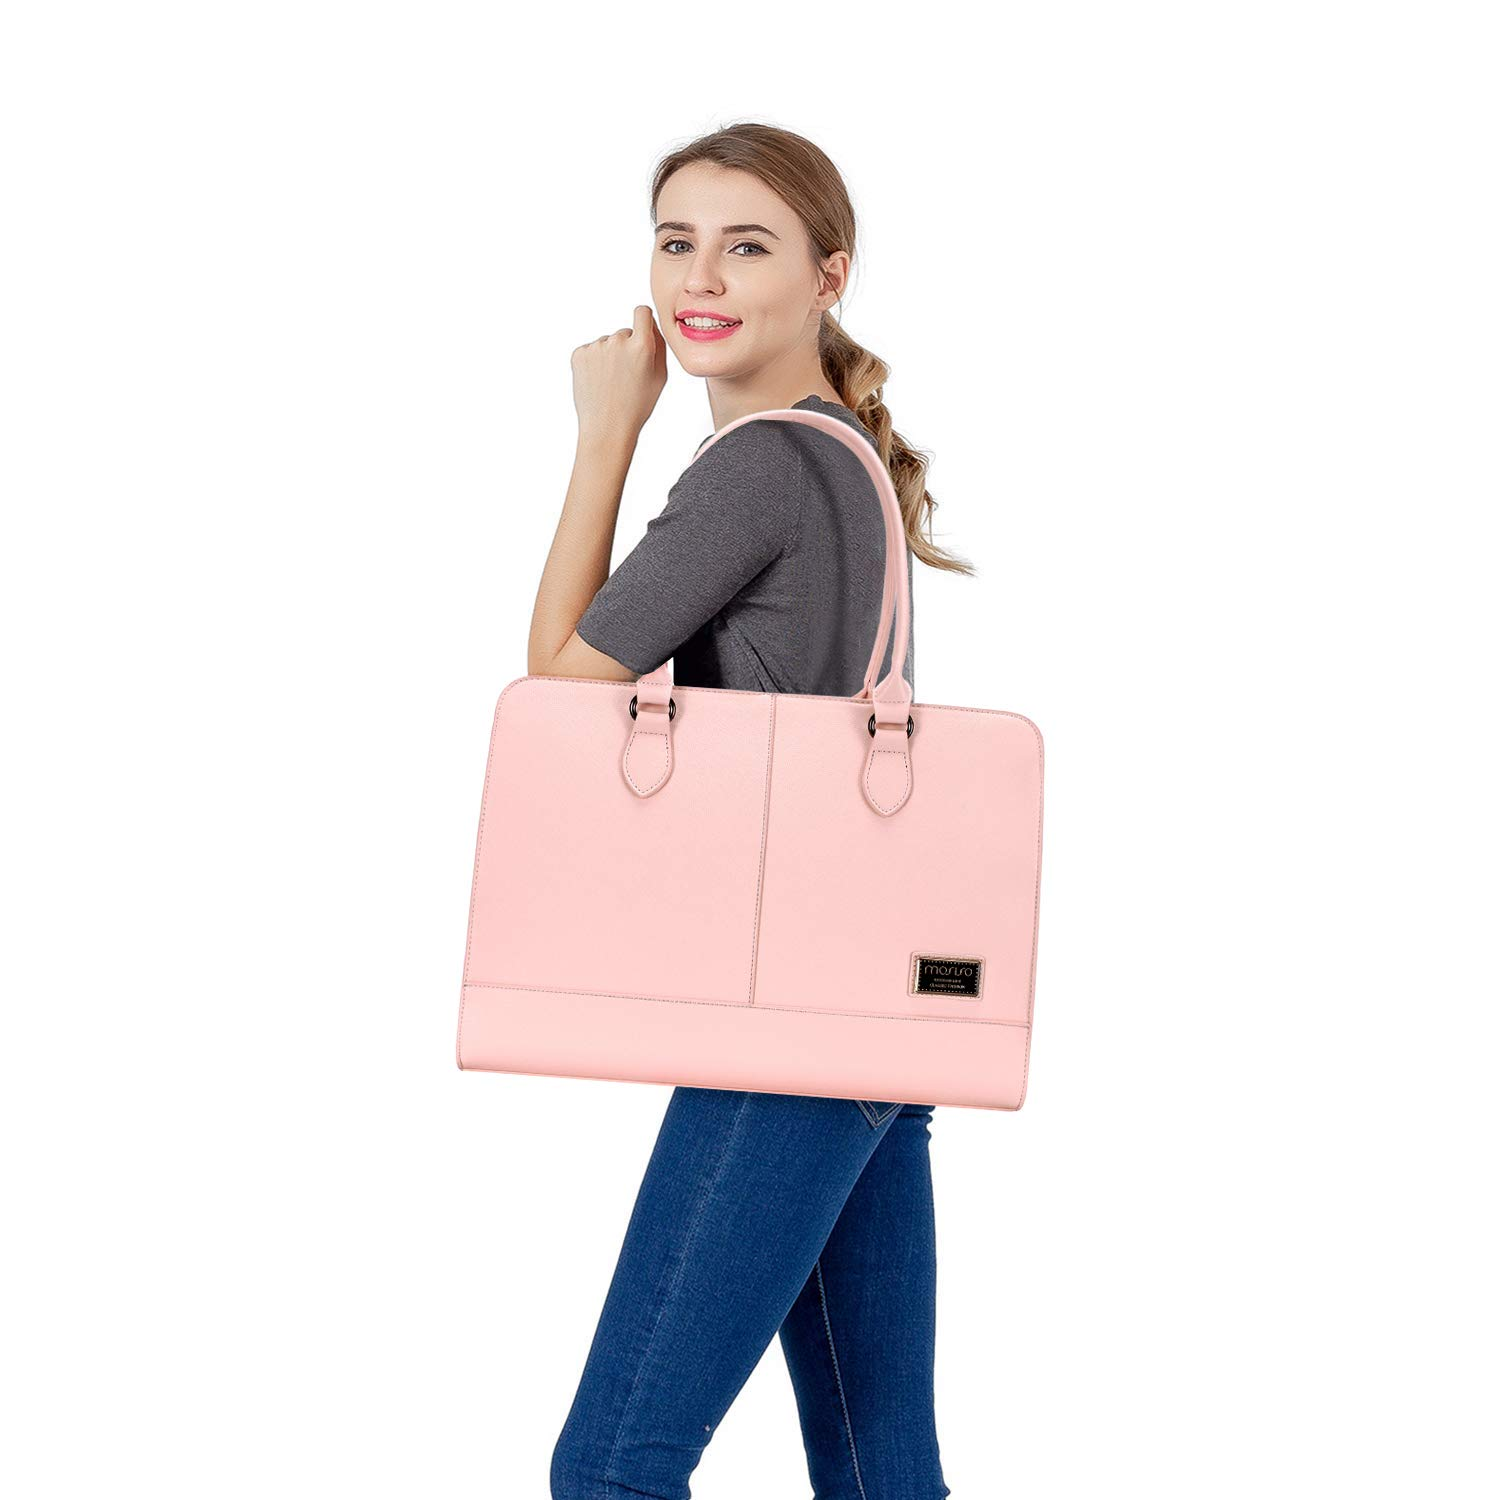 Purple Up to 15.6 Inch Briefcase for Women,PU Leather Large Capacity with 3 Layer Compartments Business Work Travel Tote Shoulder Handbag Compatible MacBook /& Notebook MOSISO Womens Laptop Bag